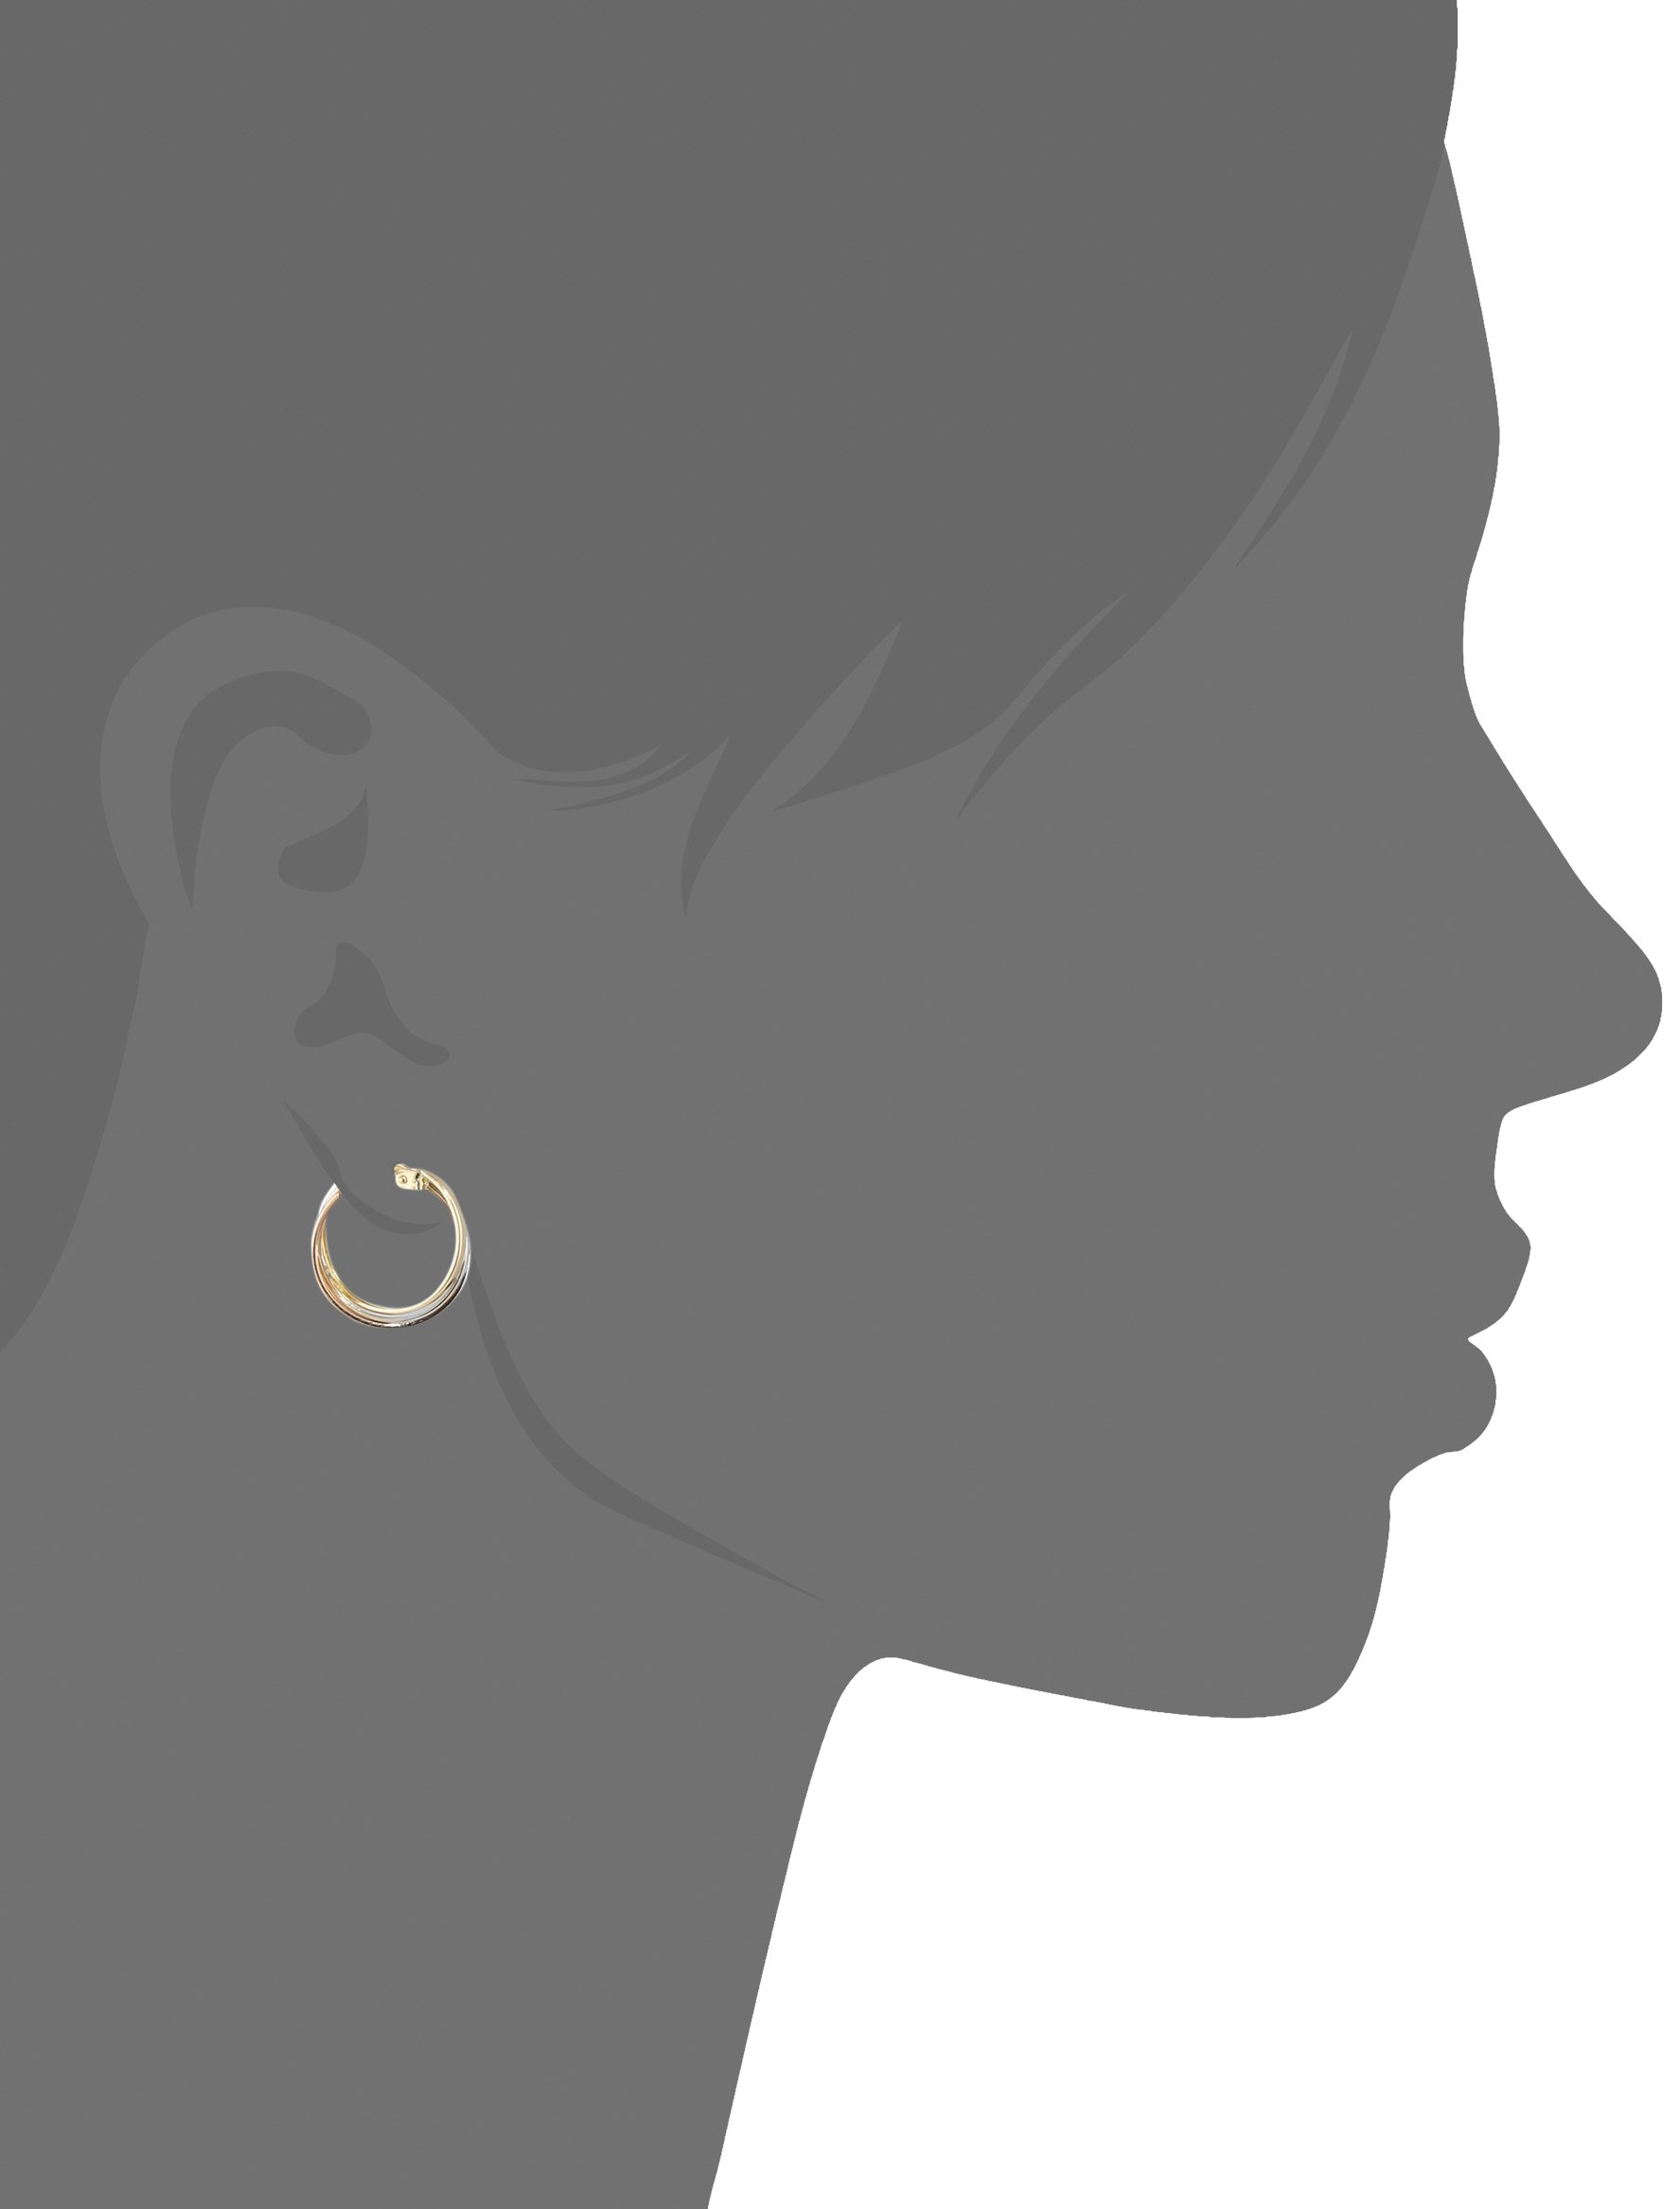 14k Gold Tri-Color Triple Hoop Earrings by Amazon Collection (Image #2)